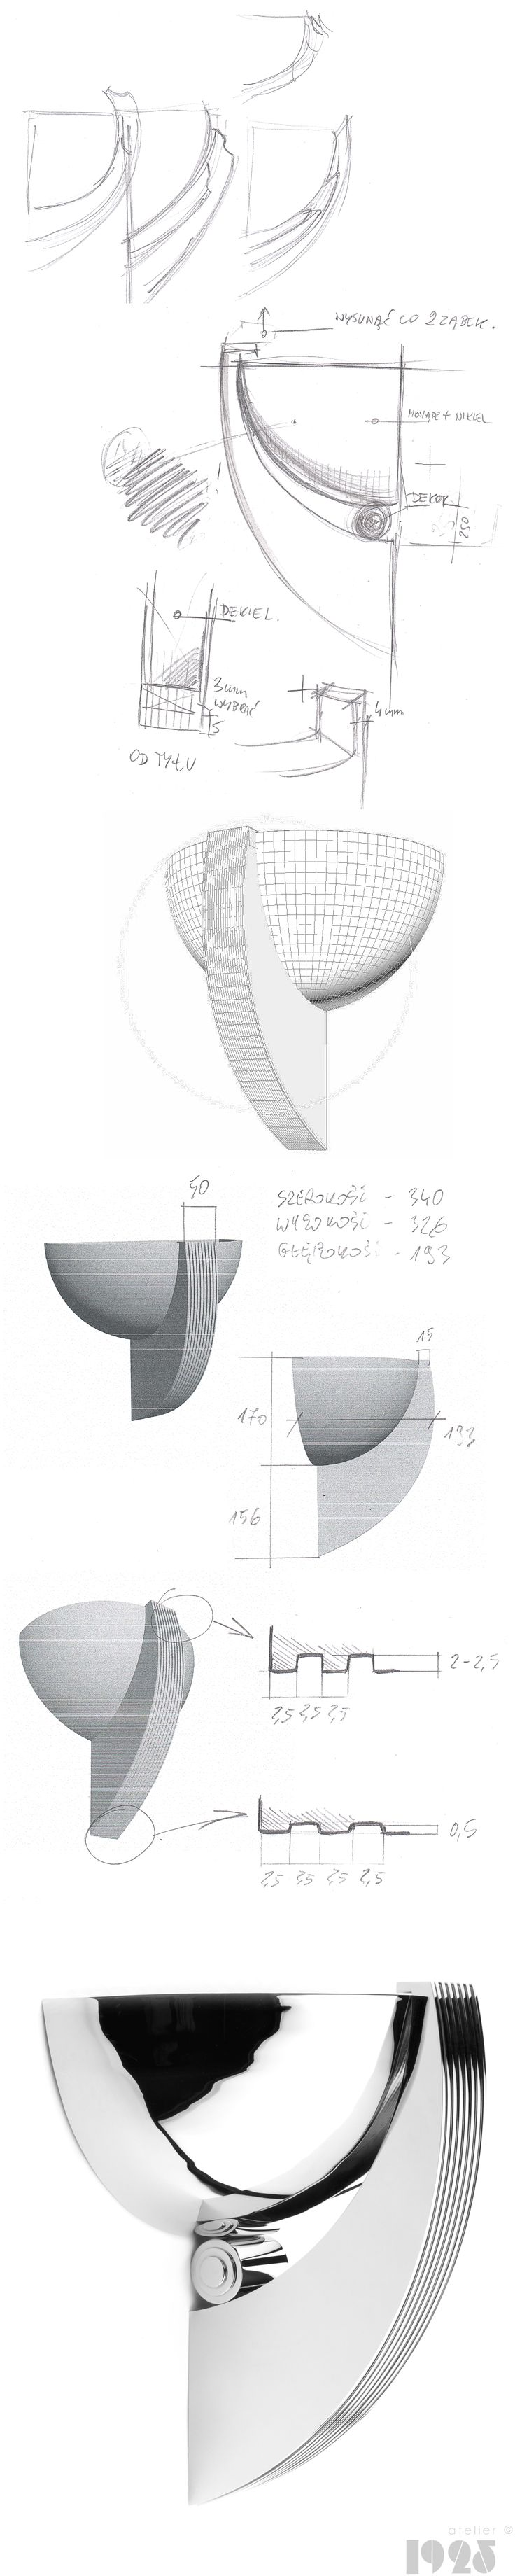 Sketches and design process of timeless and unique, art deco ispired sconce by atelier 1925